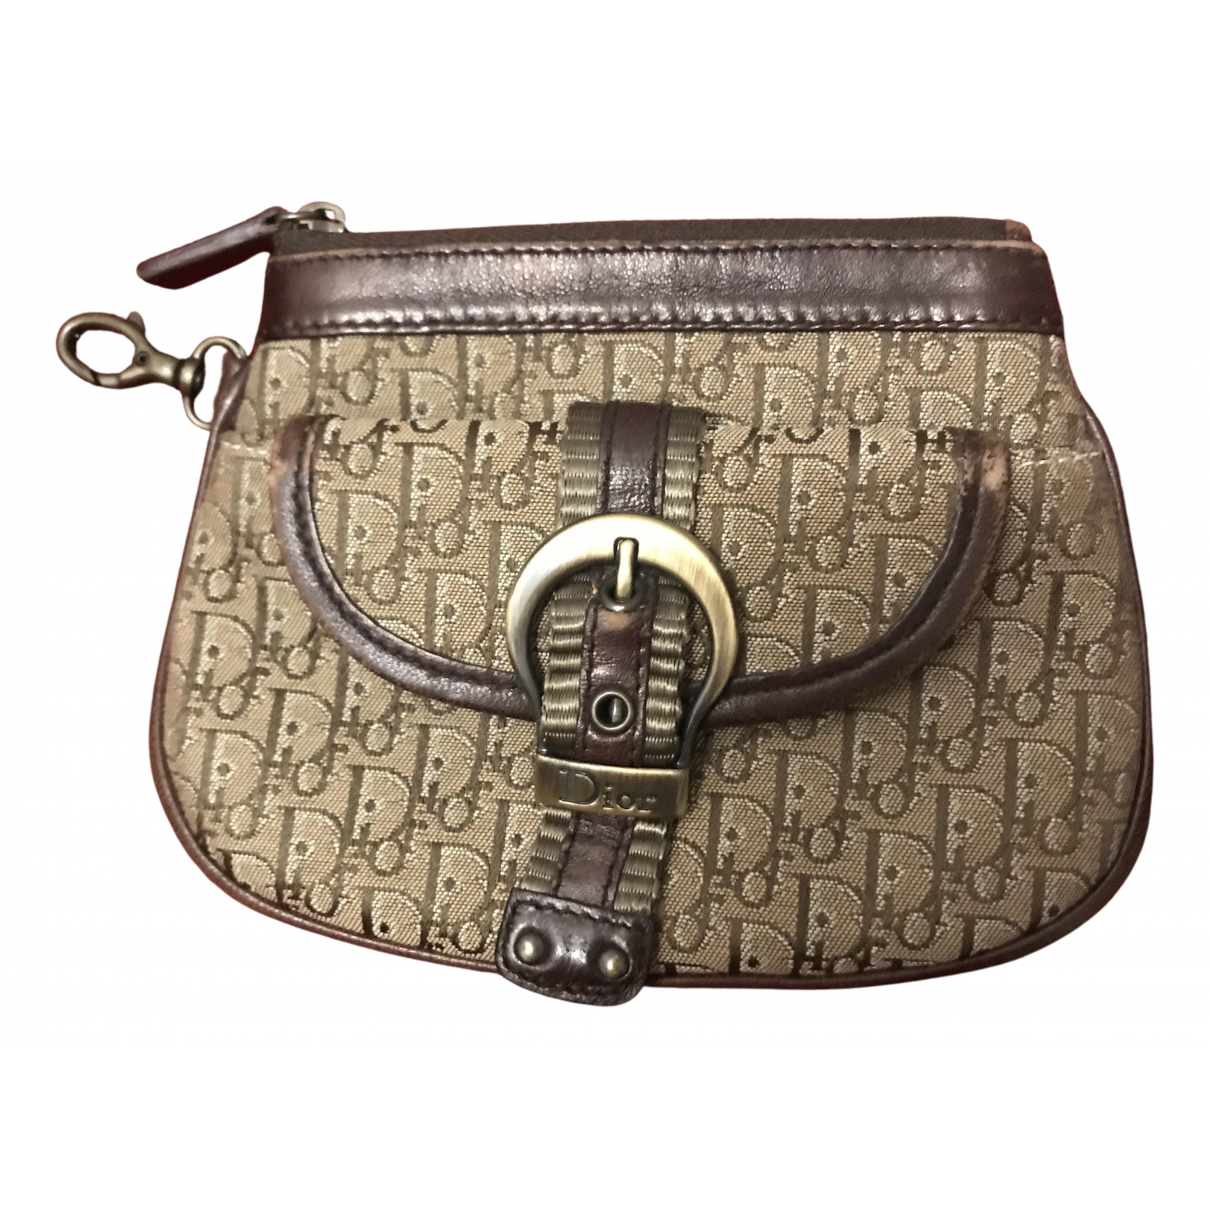 Dior N Brown Cloth Purses, wallet & cases for Women N